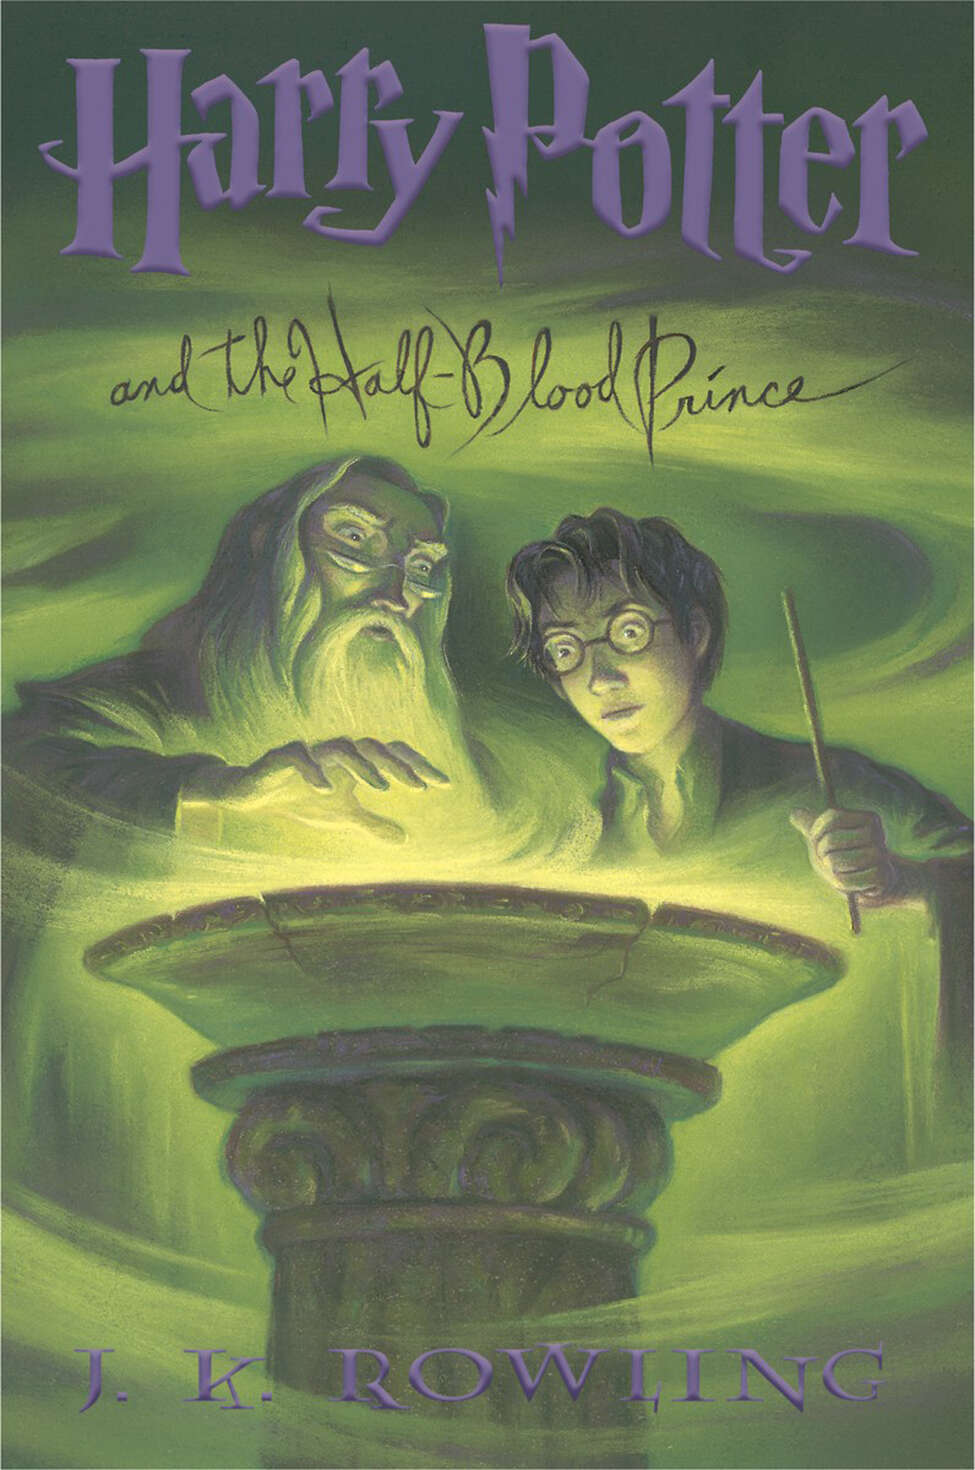 This photo supplied by Scholastic publishers shows the dust jacket cover of the U.S. version of